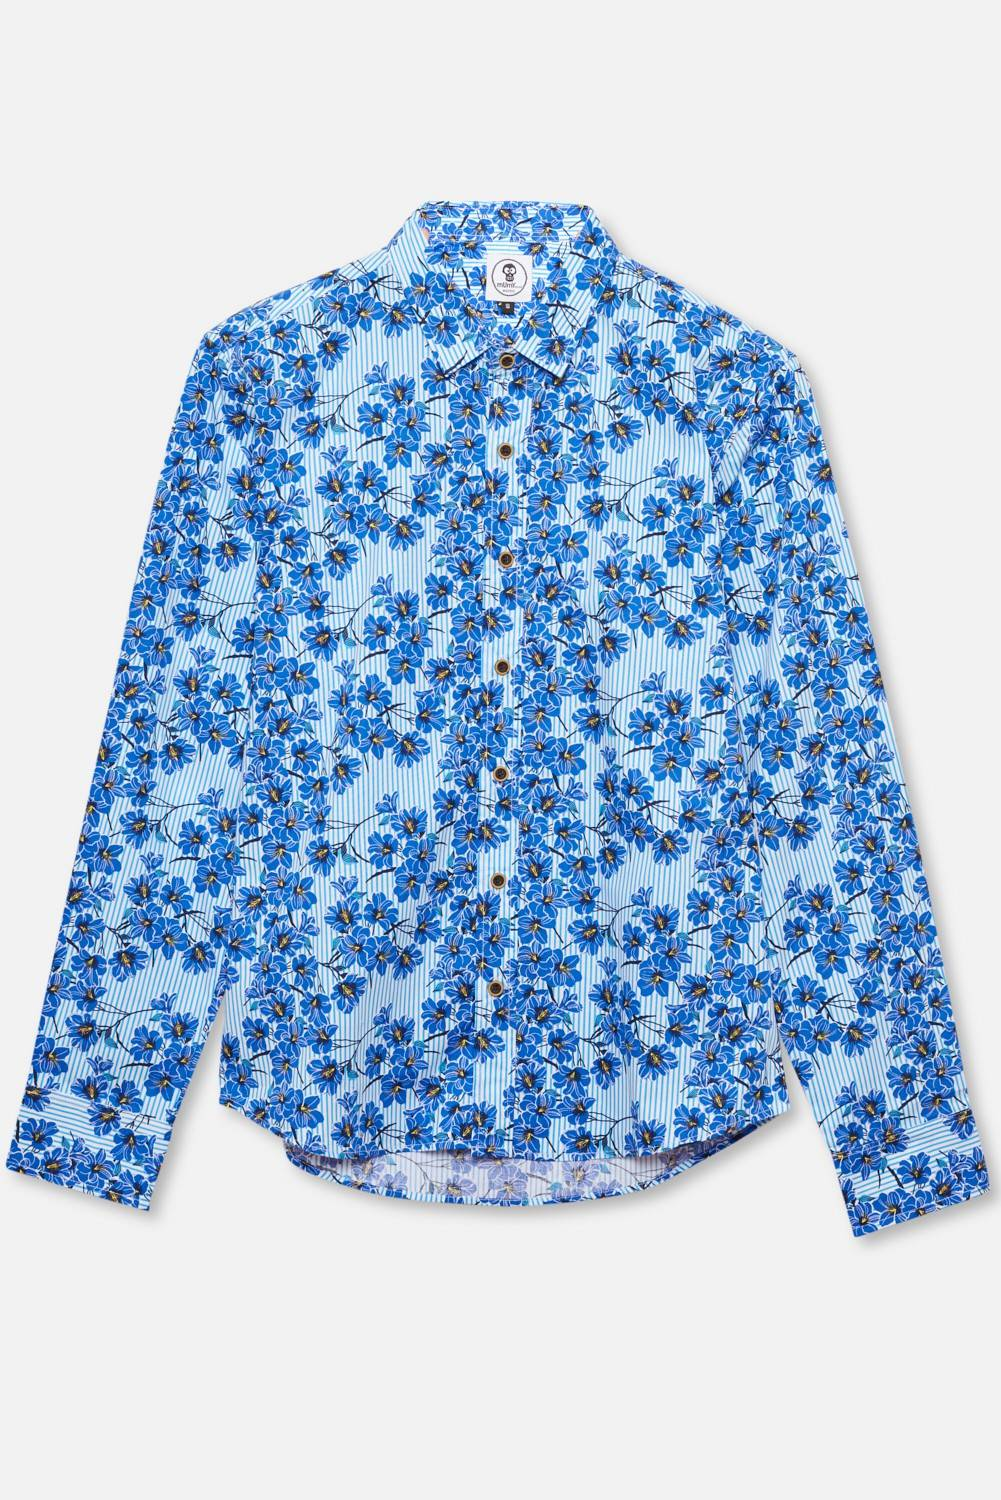 ADULT'S PRINTED SHIRT BLUE FLOWERS